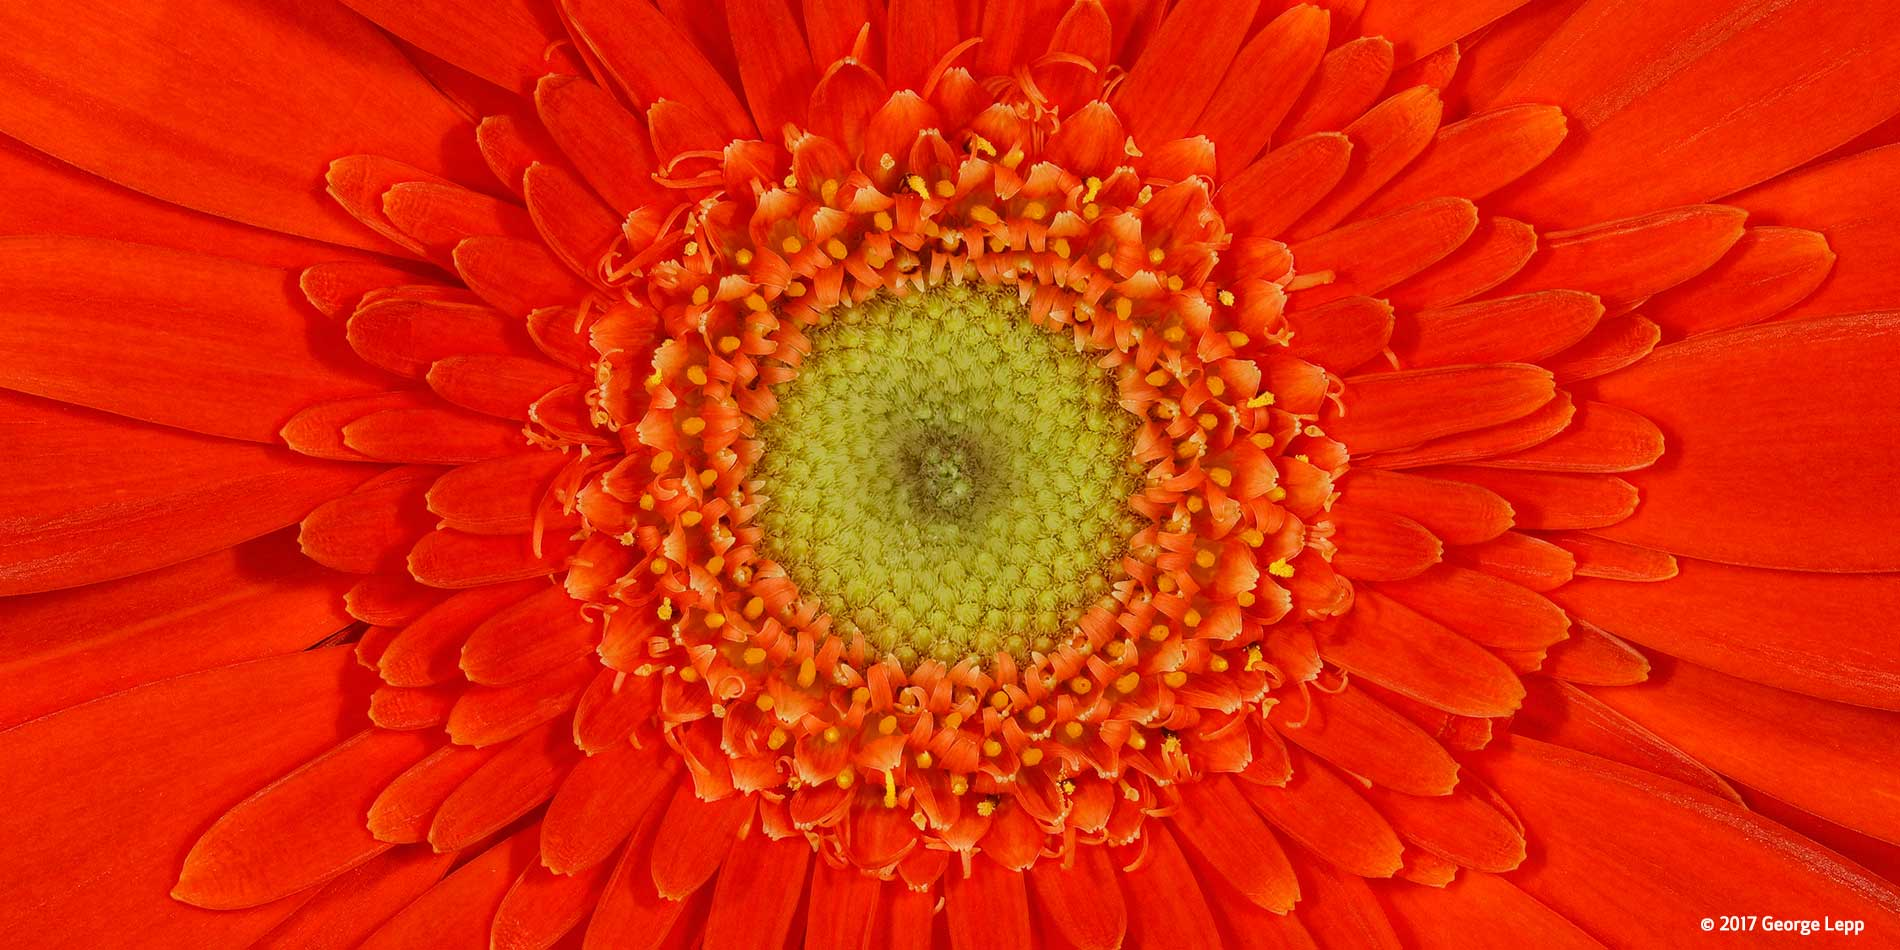 Canon See Impossible - George Lepp - Gerbera Daisy